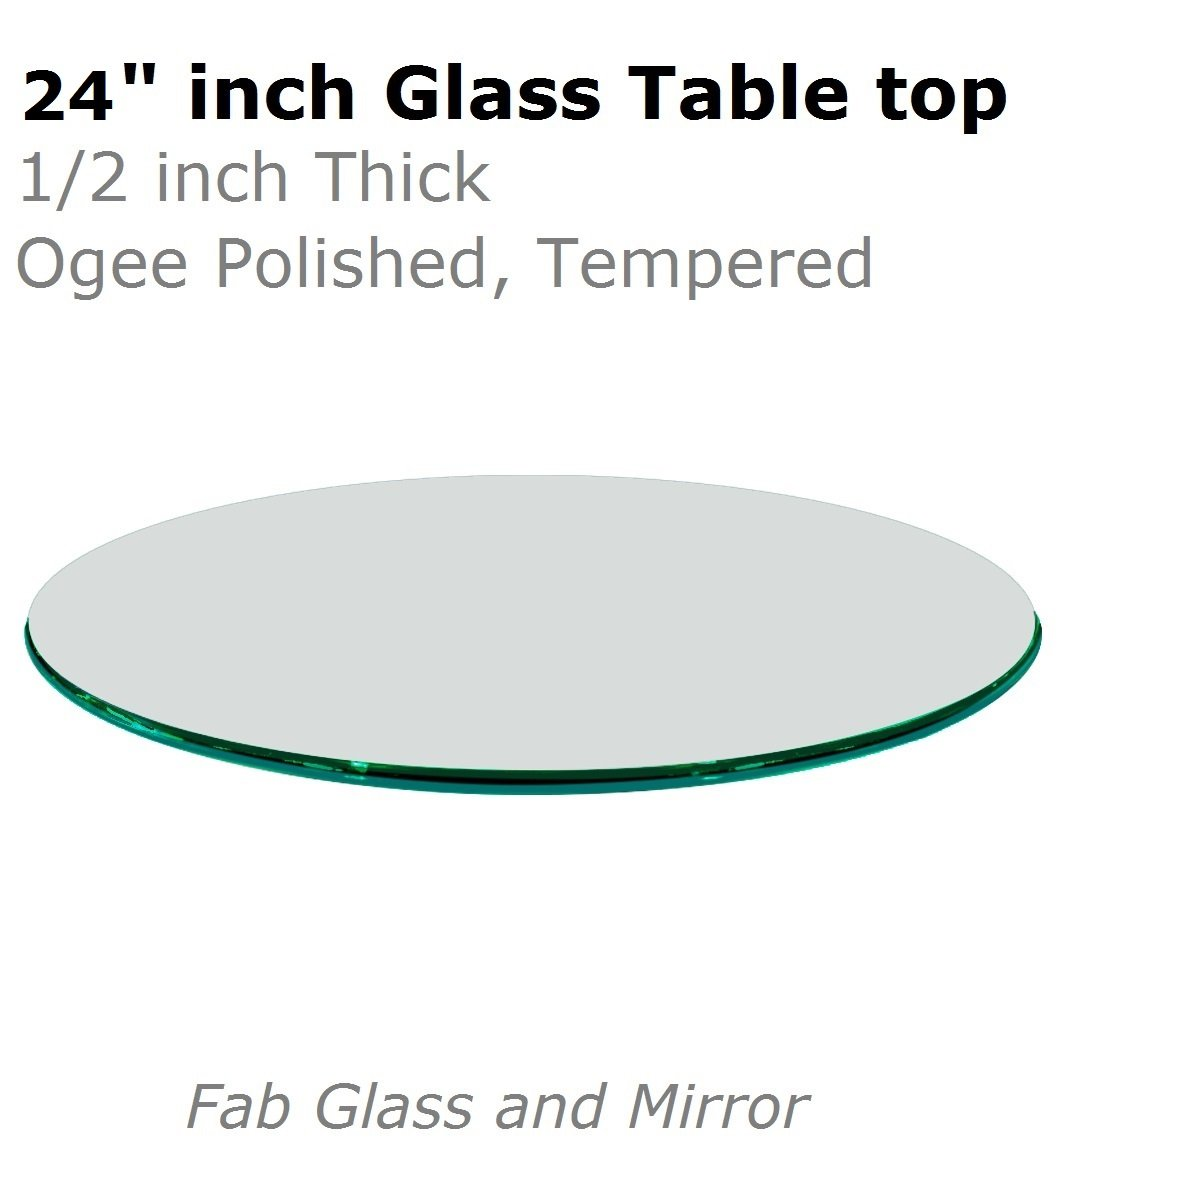 Fab Glass and Mirror T-24RD12MMOGTE 24'' Clear Round 1/2'' Inch Thick Tempered Ogee Edge Polish Glass Table Top, by Fab Glass and Mirror